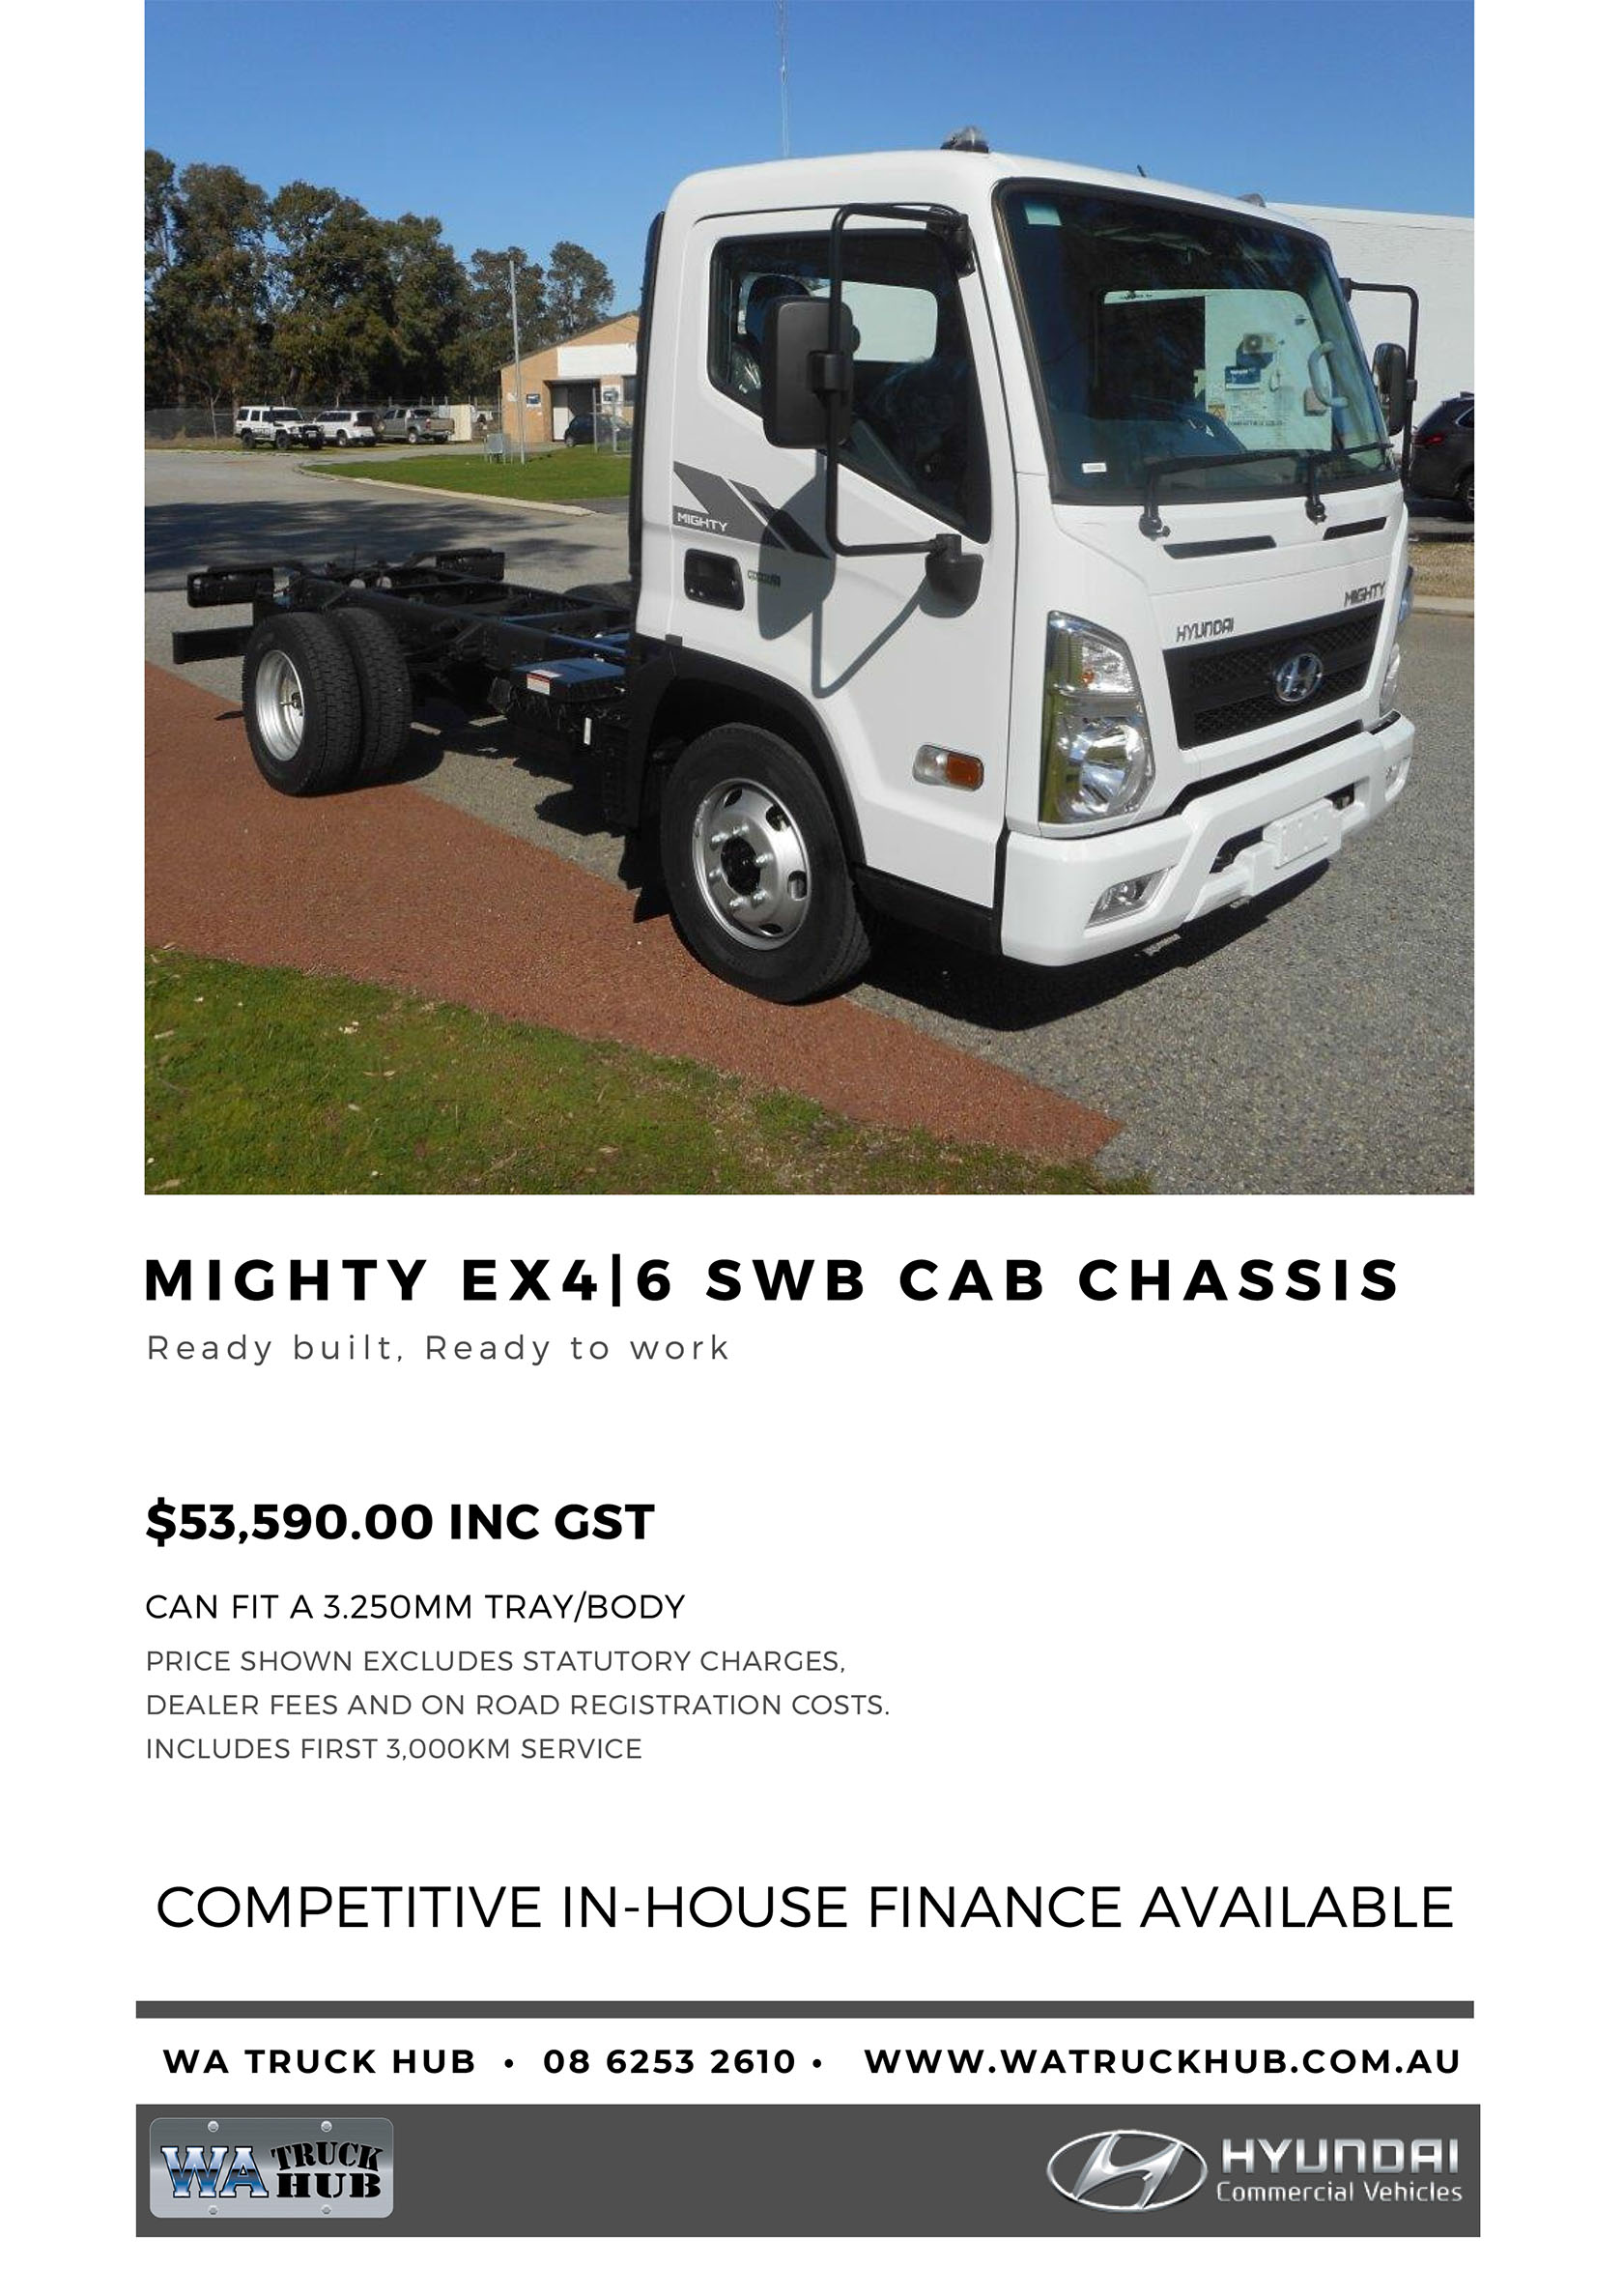 Mighty SWB Cab Chassis Model - 2020